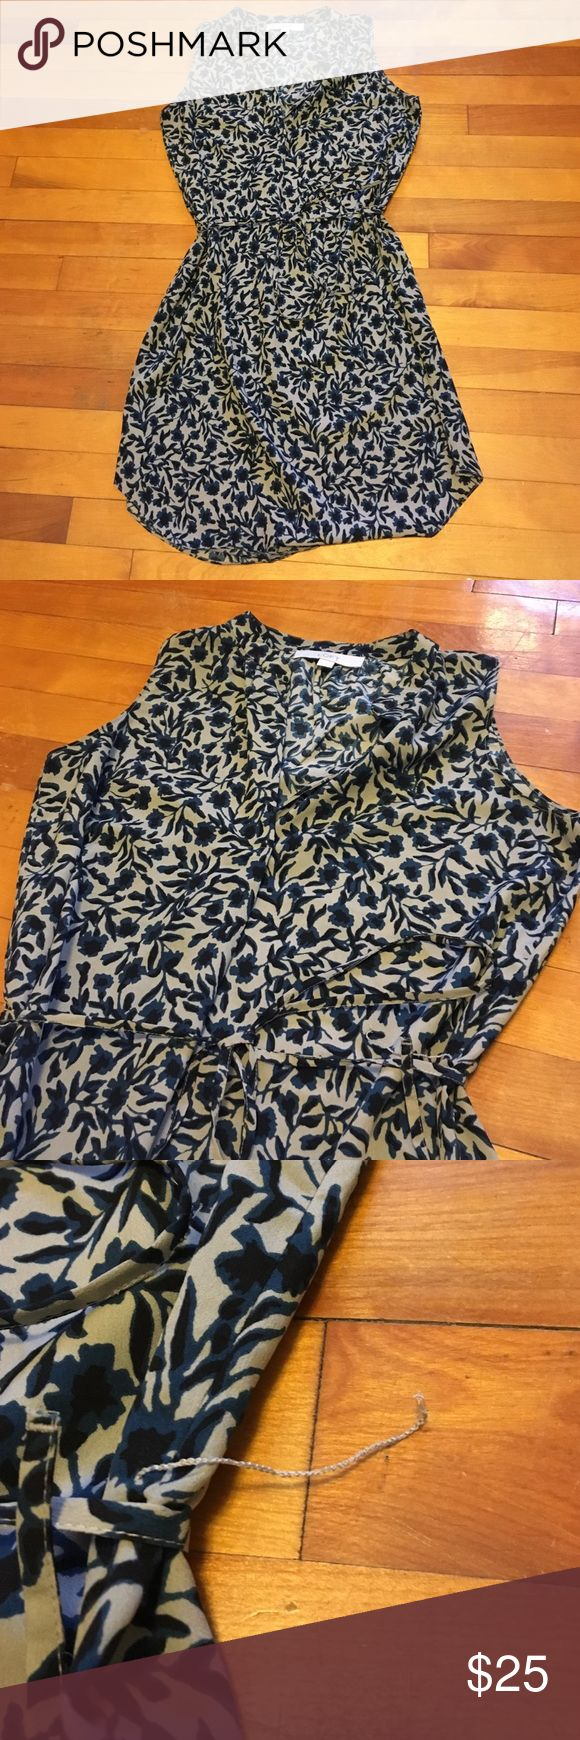 Loft dress Preloved Loft dress   Only defect is the tie loop on the left side ripped as shown. Good dress for layering. Smoke free home. Bundling available. LOFT Dresses Midi